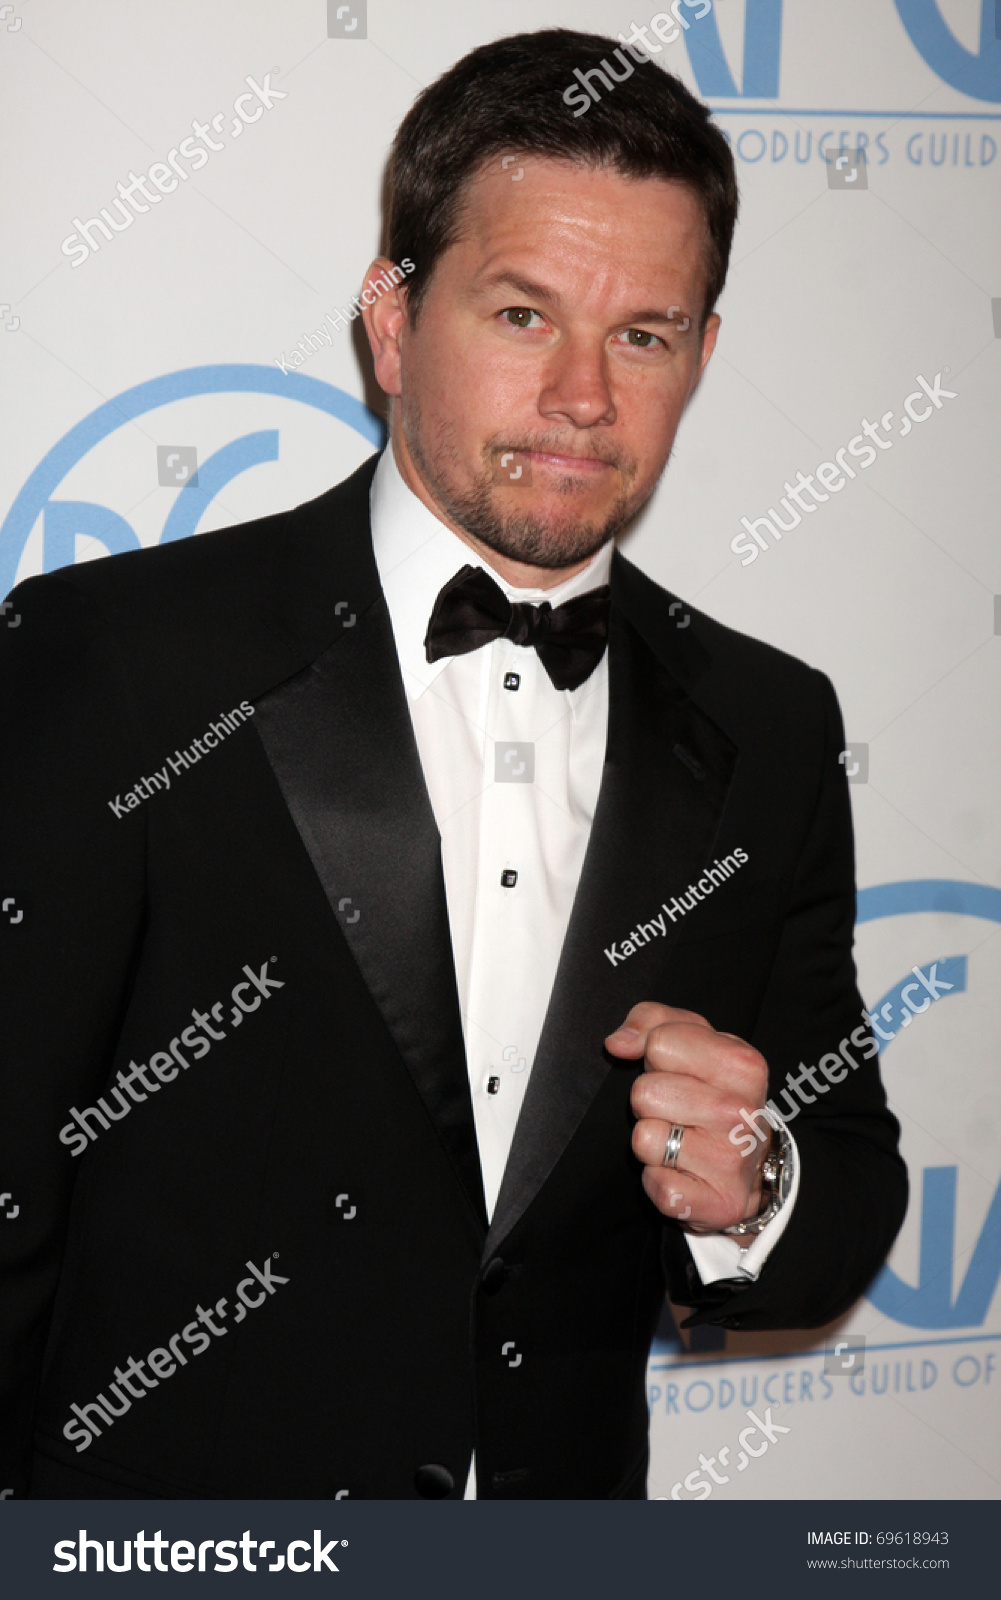 BEVERLY HILLS - JAN 22: Mark Wahlberg arrives at the 22nd Annual Producers  Guild Awards